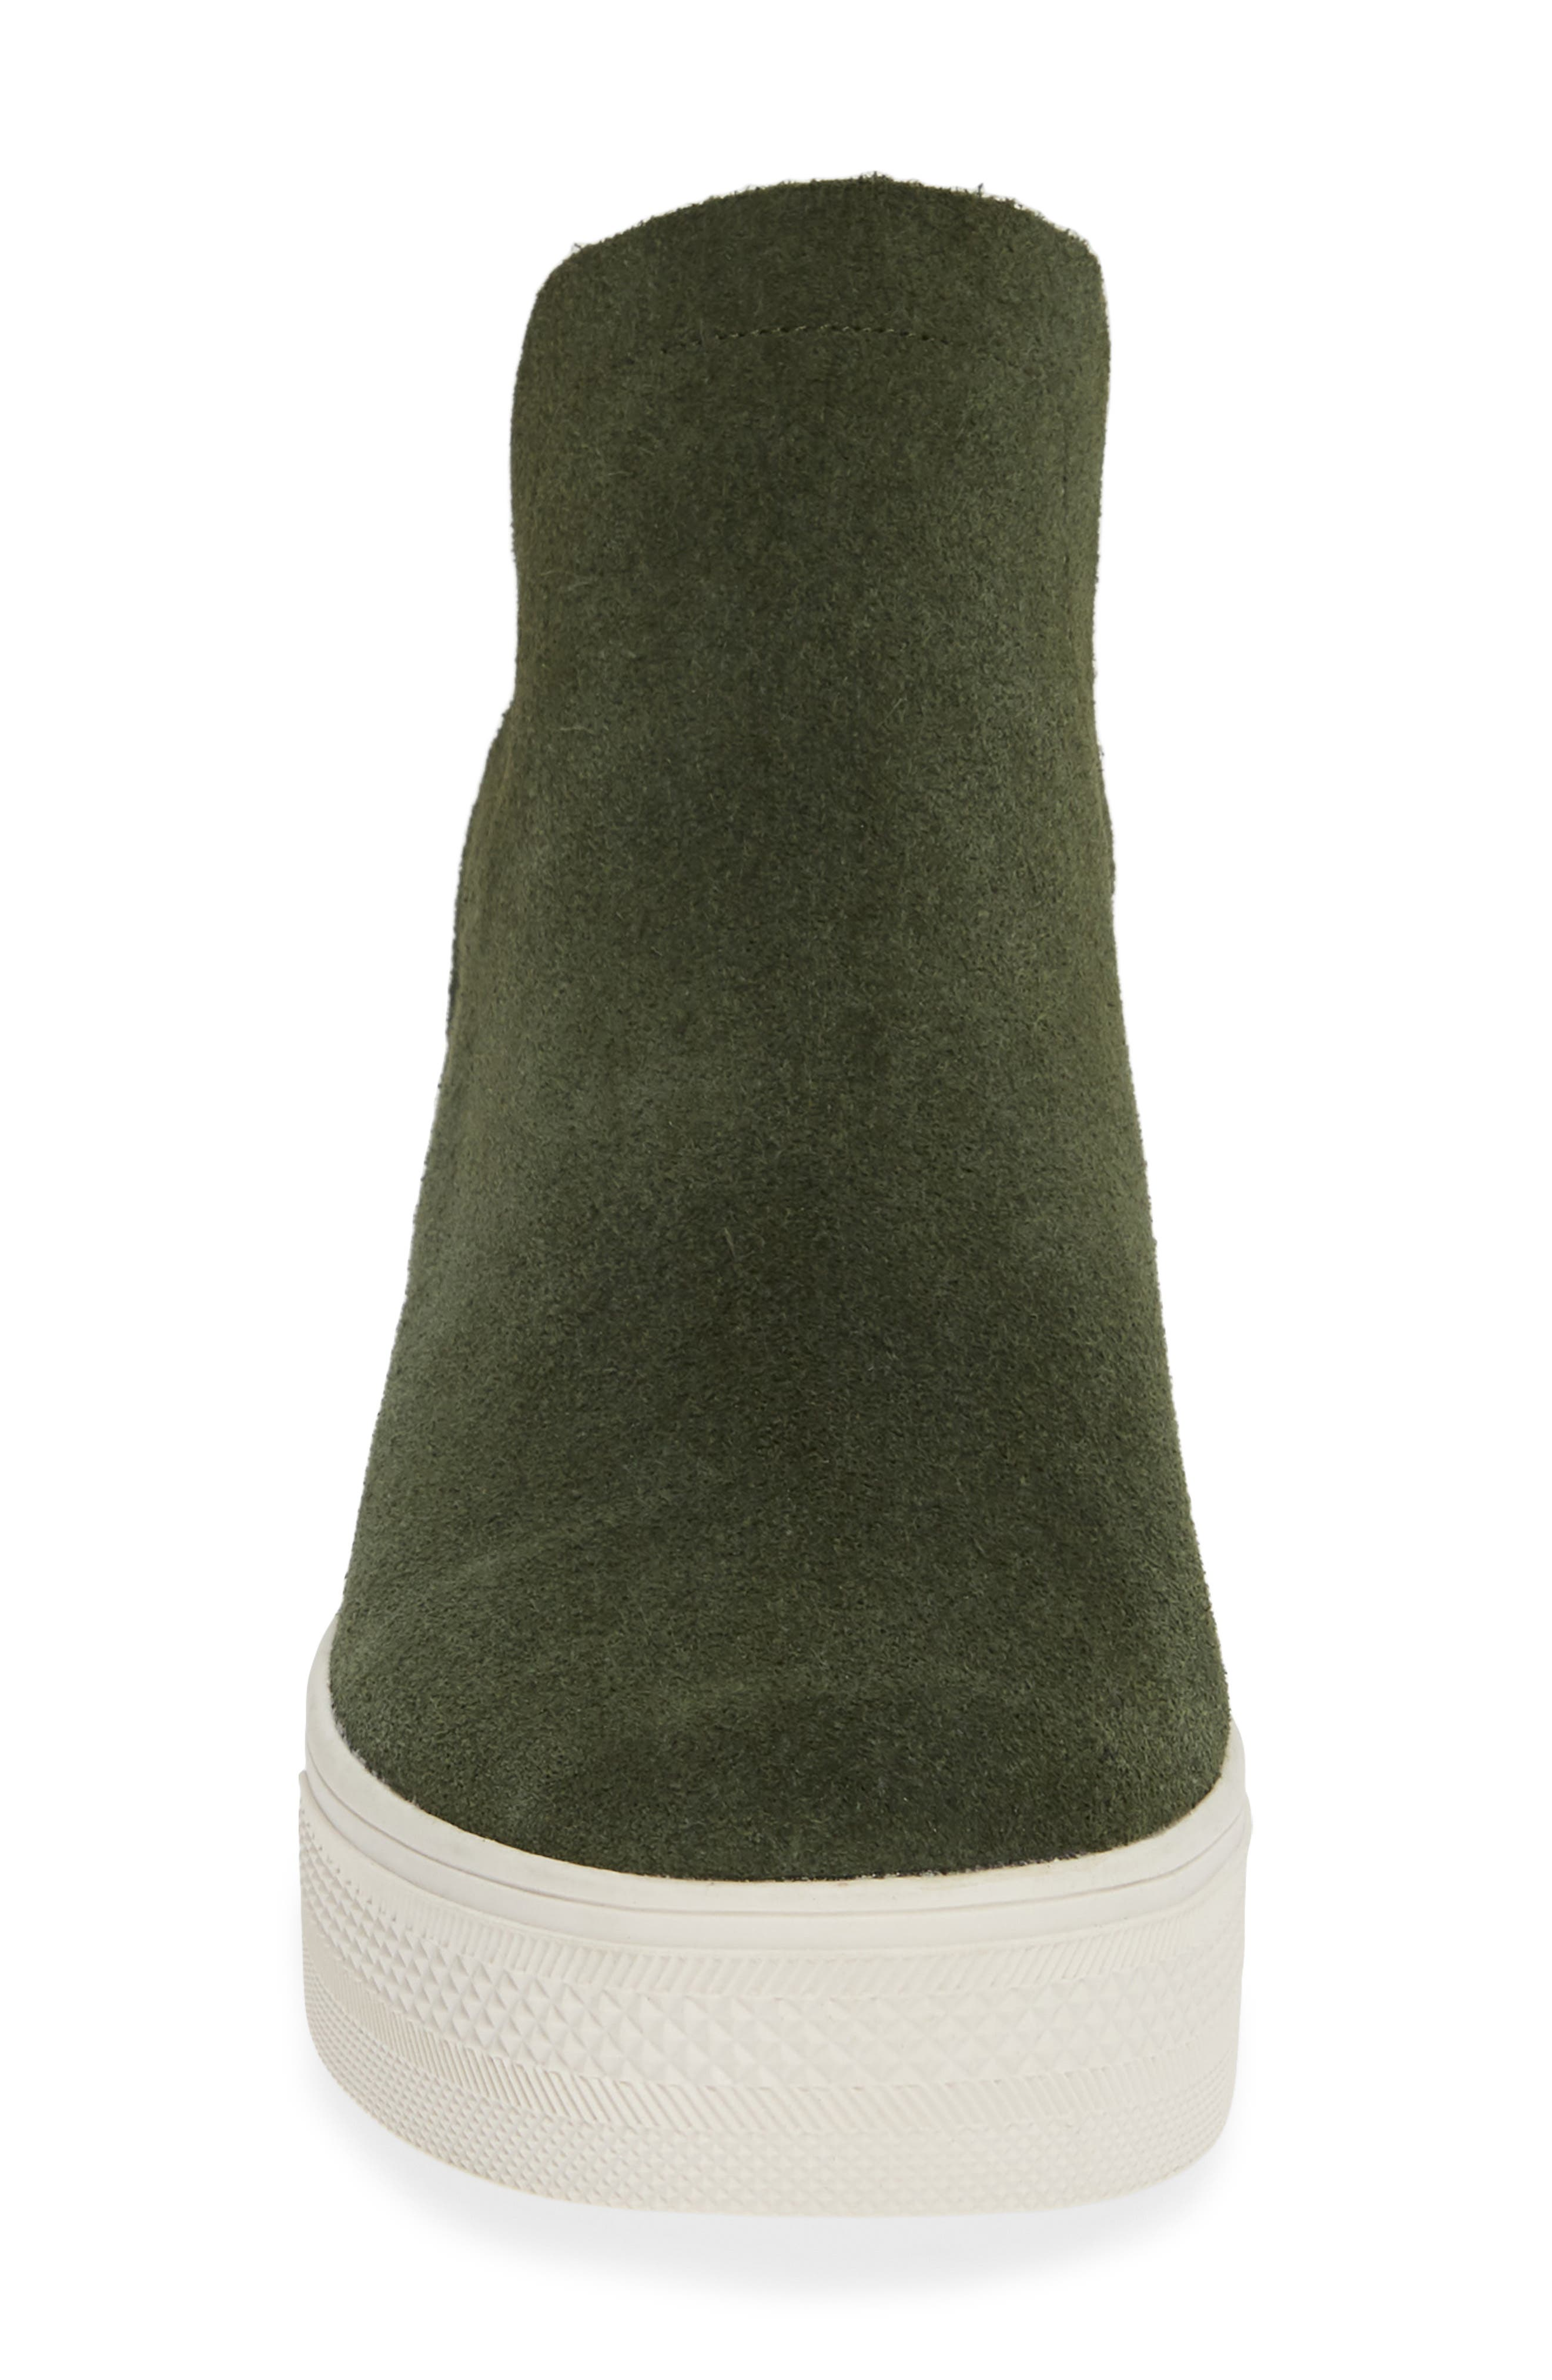 Wrangle Sneaker,                             Alternate thumbnail 4, color,                             OLIVE SUEDE